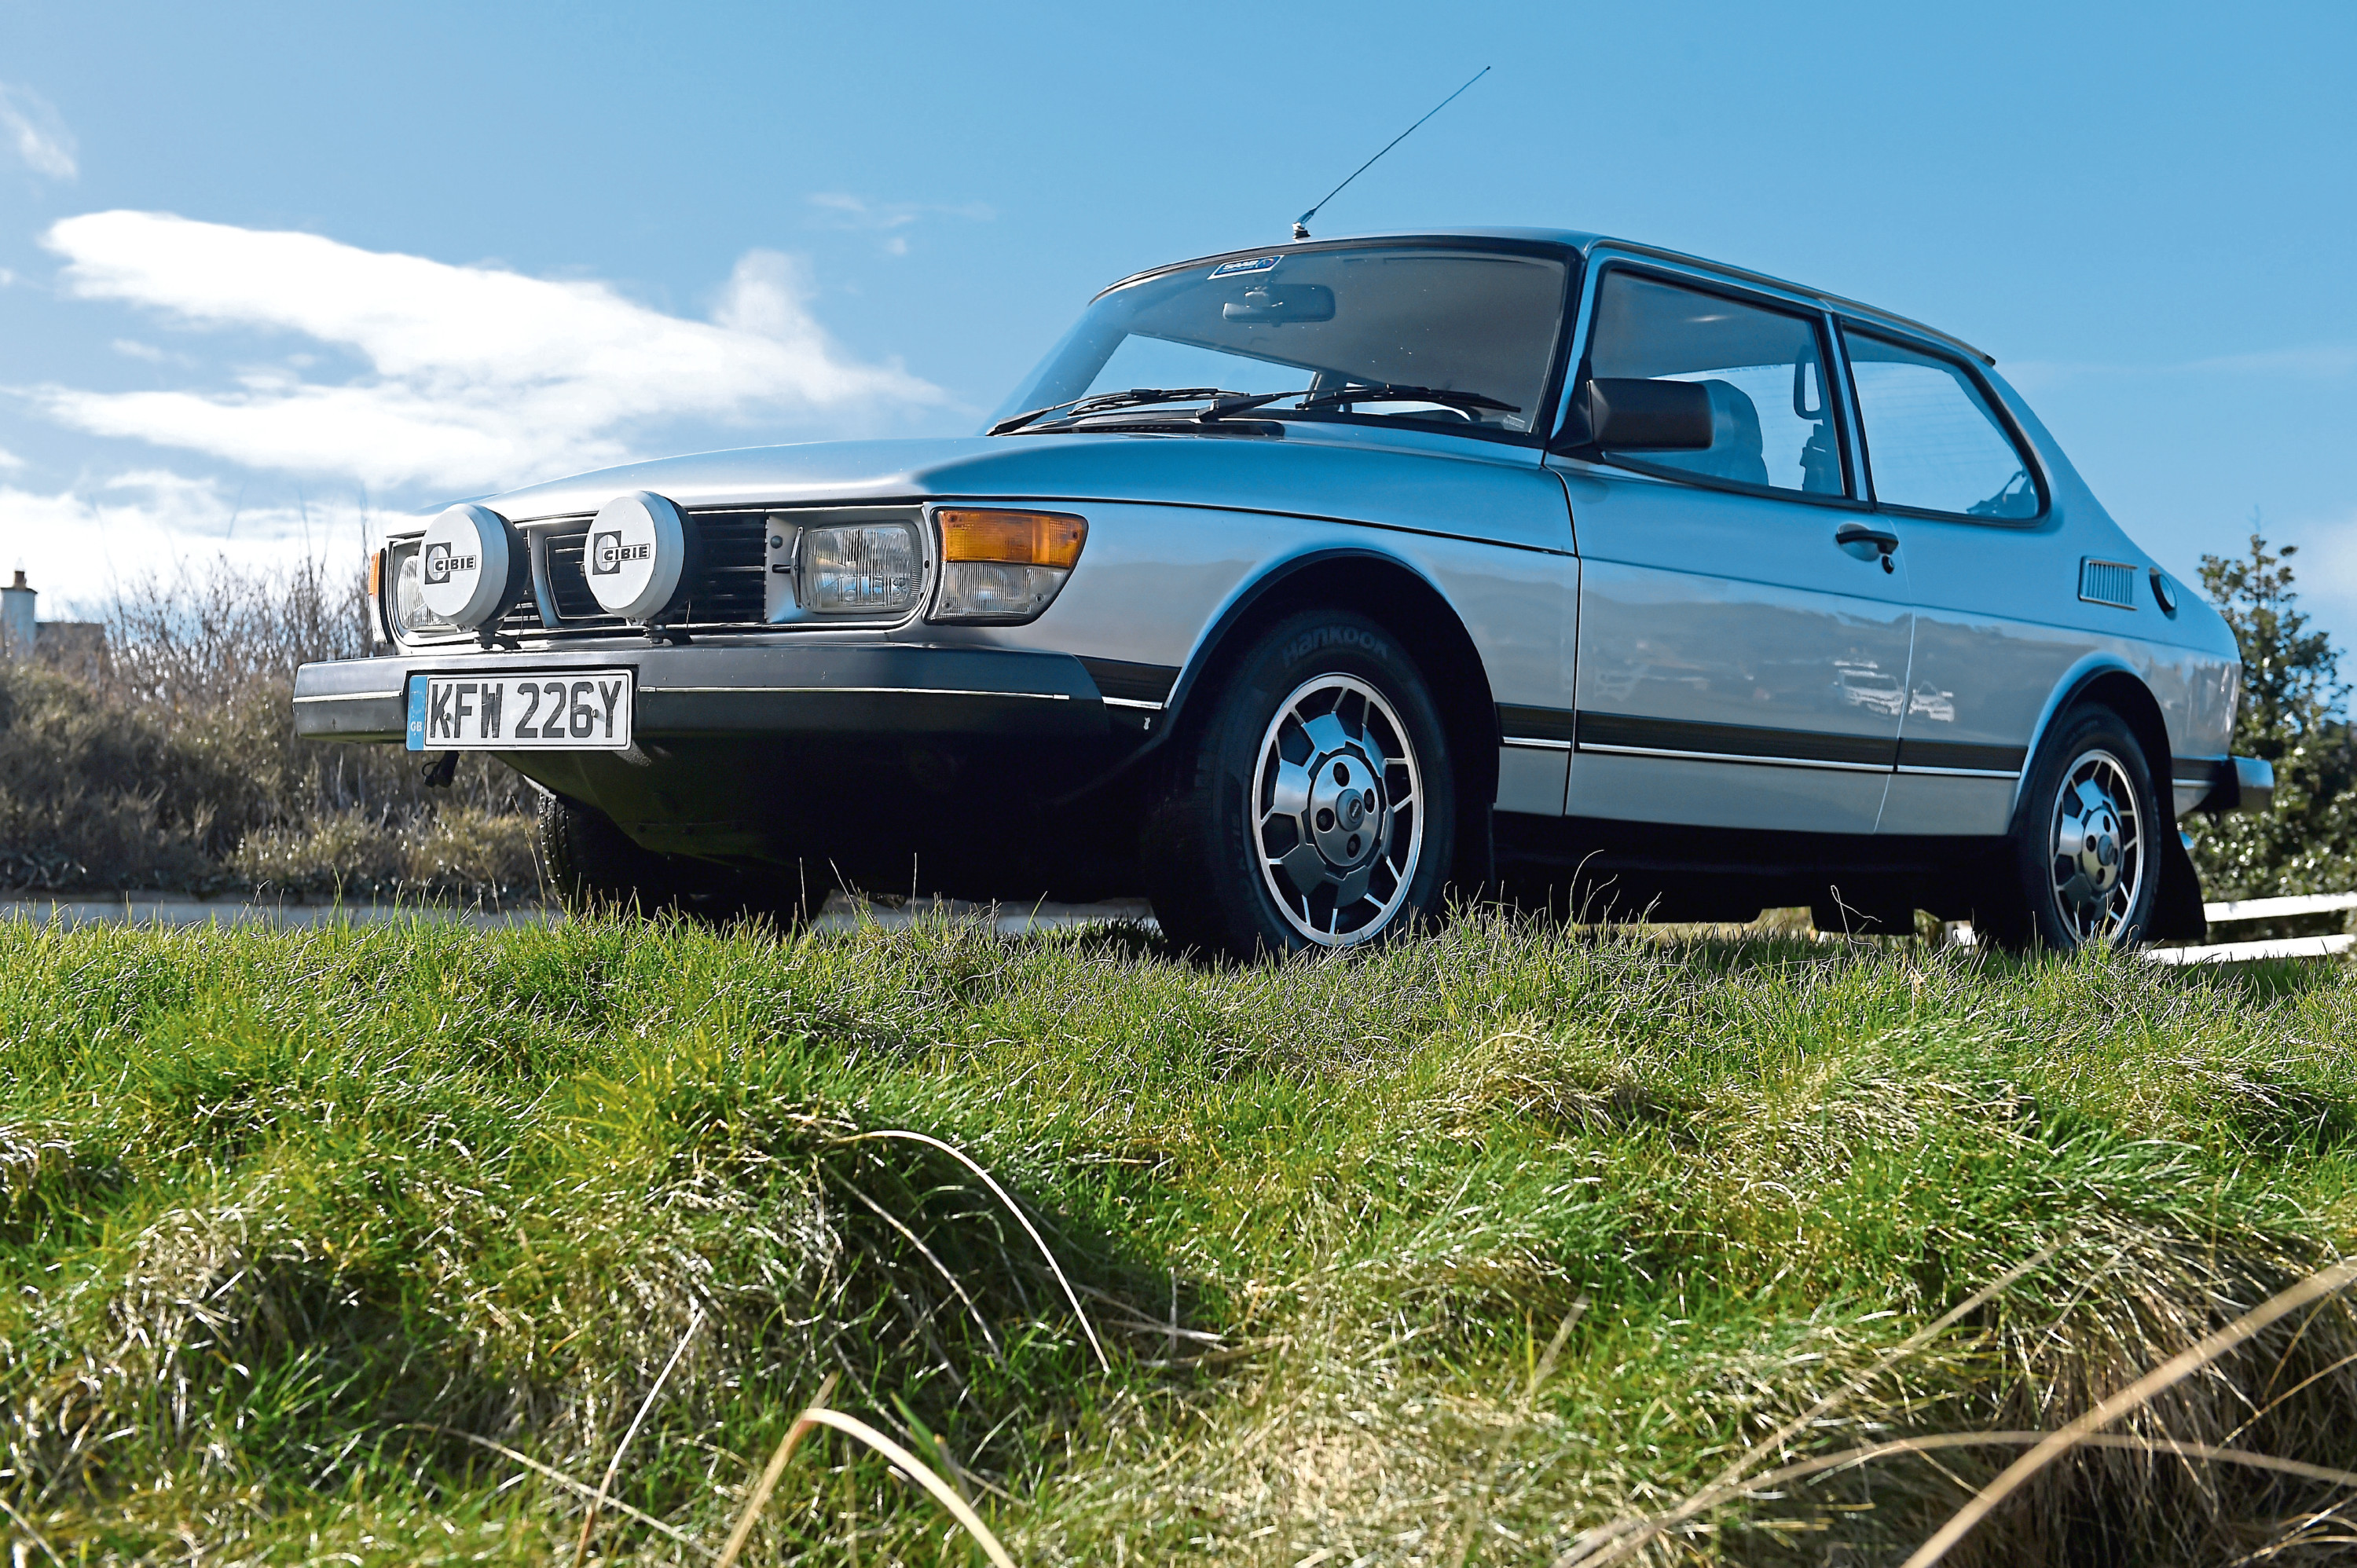 The 1982 Saab 99GL photographed at the seafront in the village of Rosemarkie. Pictures by Sandy McCook.